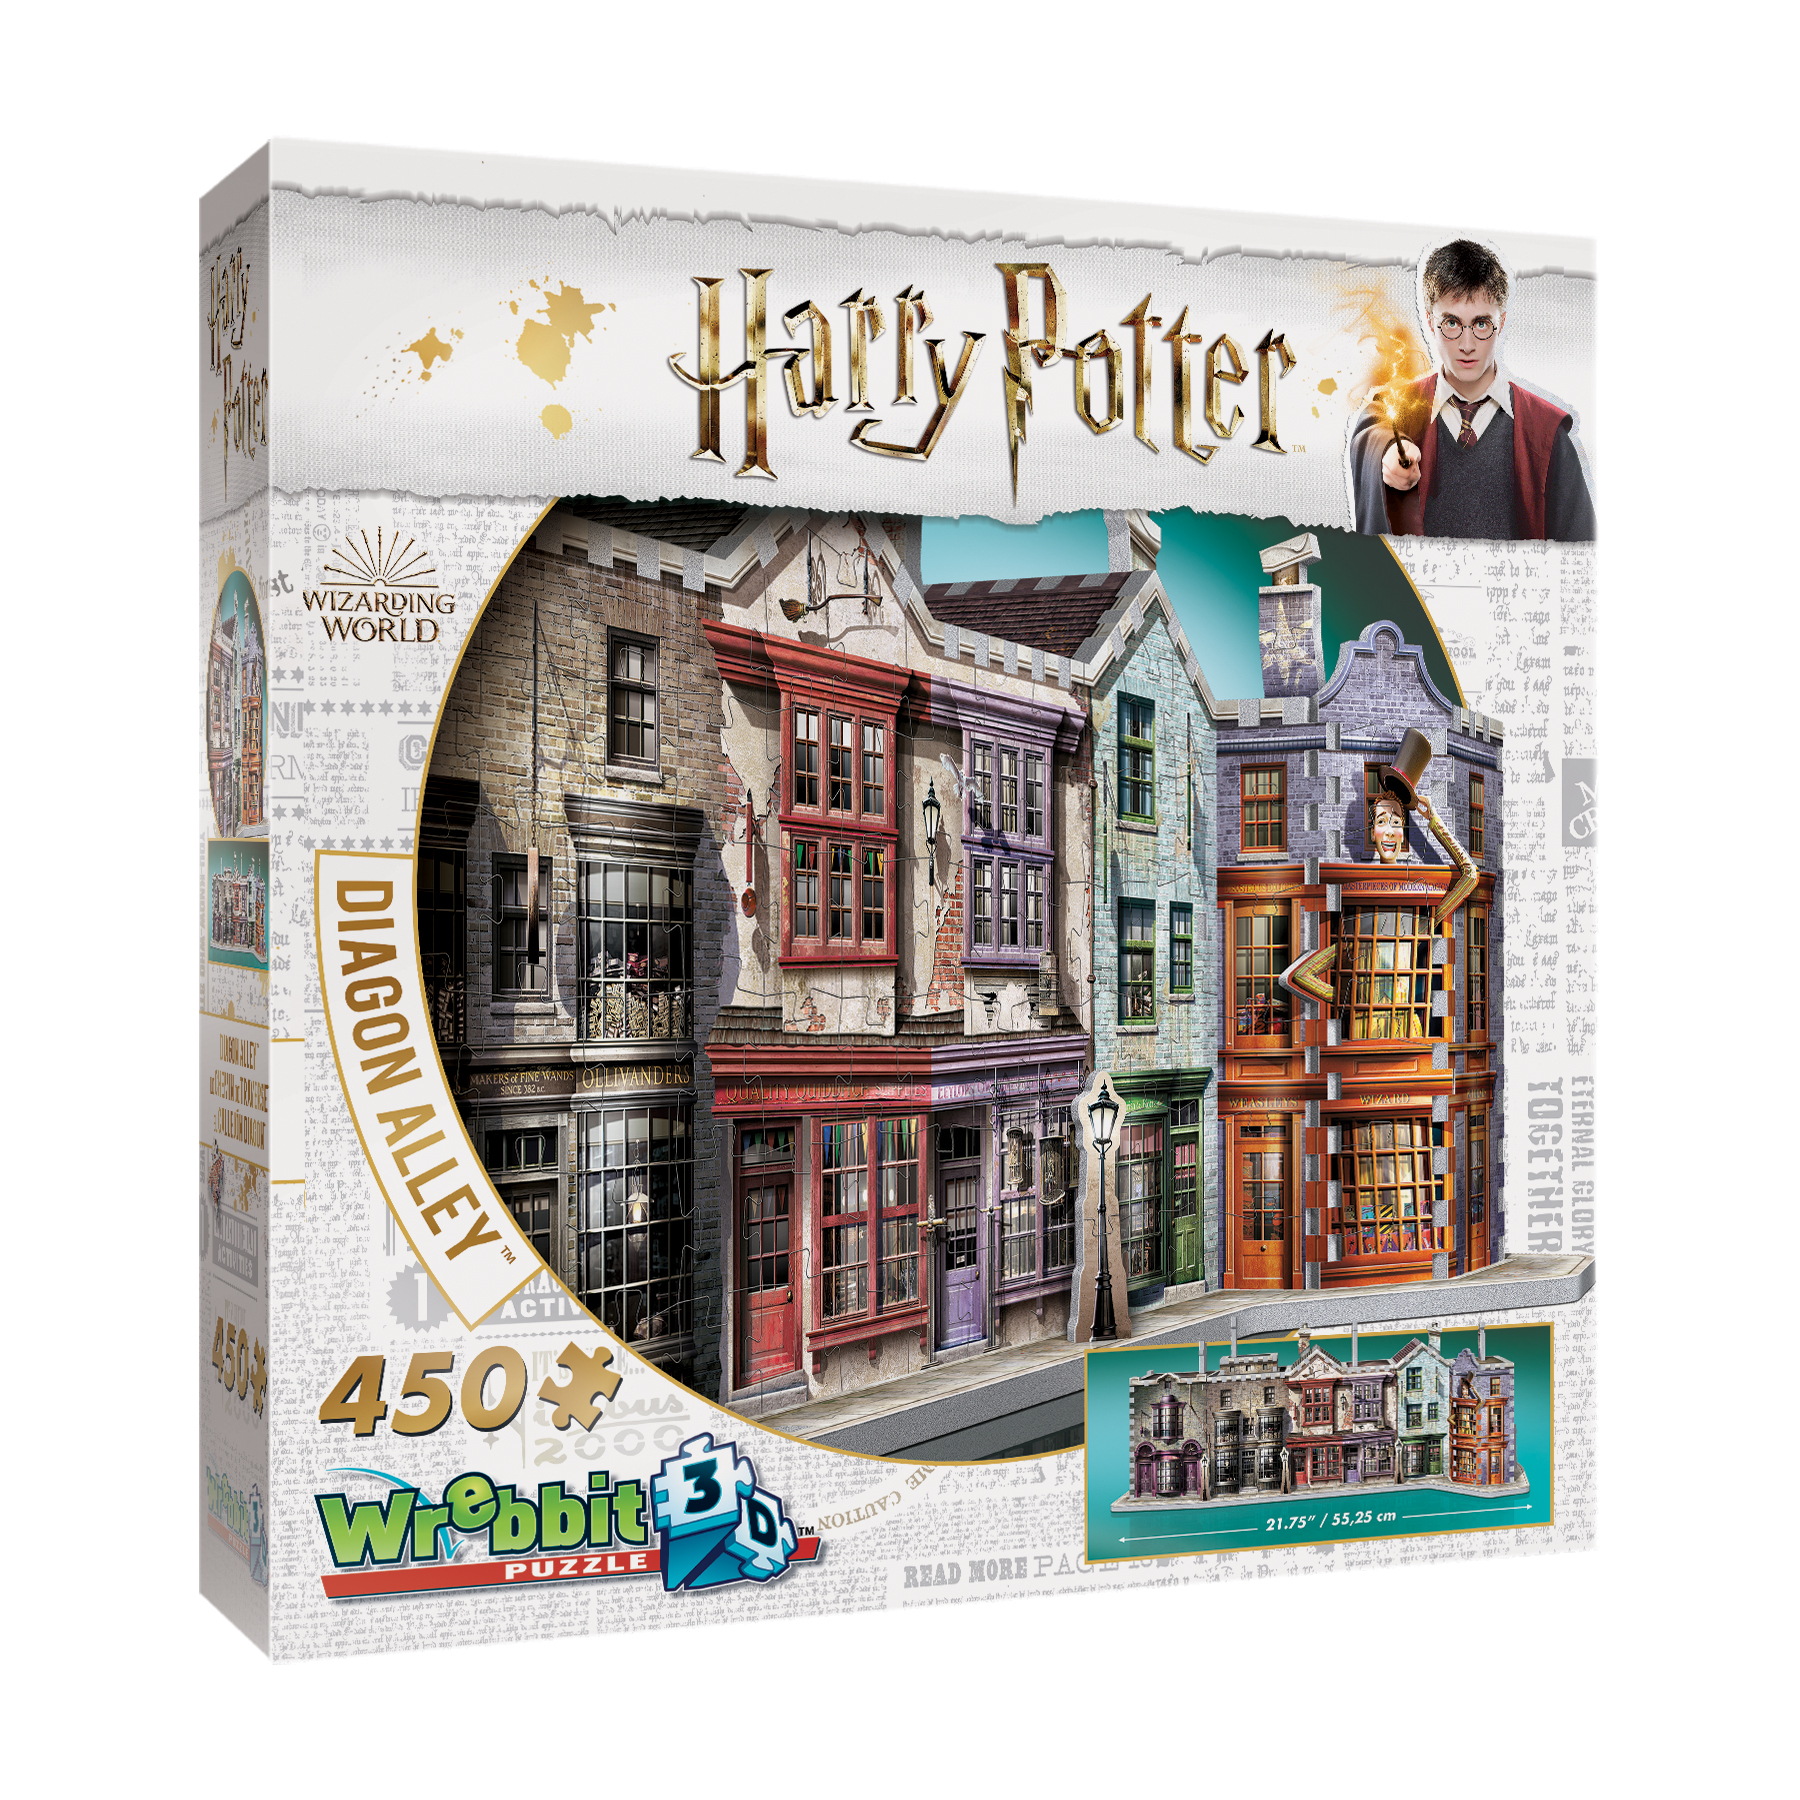 Harry Potter Collection Diagon Alley 3D Puzzle: 450 Pcs by Wrebbit